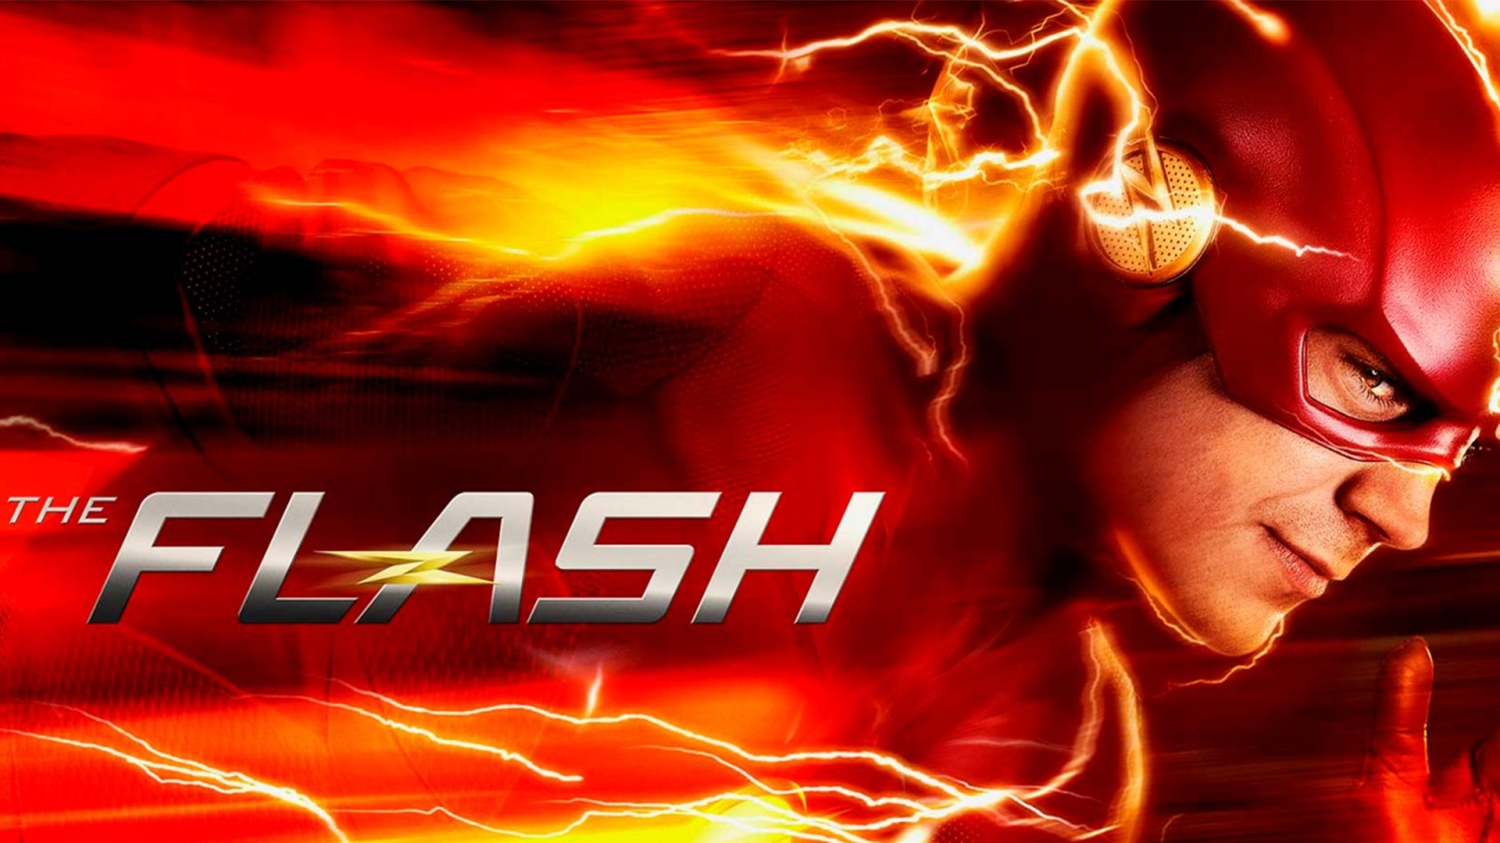 The Flash Series Travfashjourno.com Which movies tv shows to watch